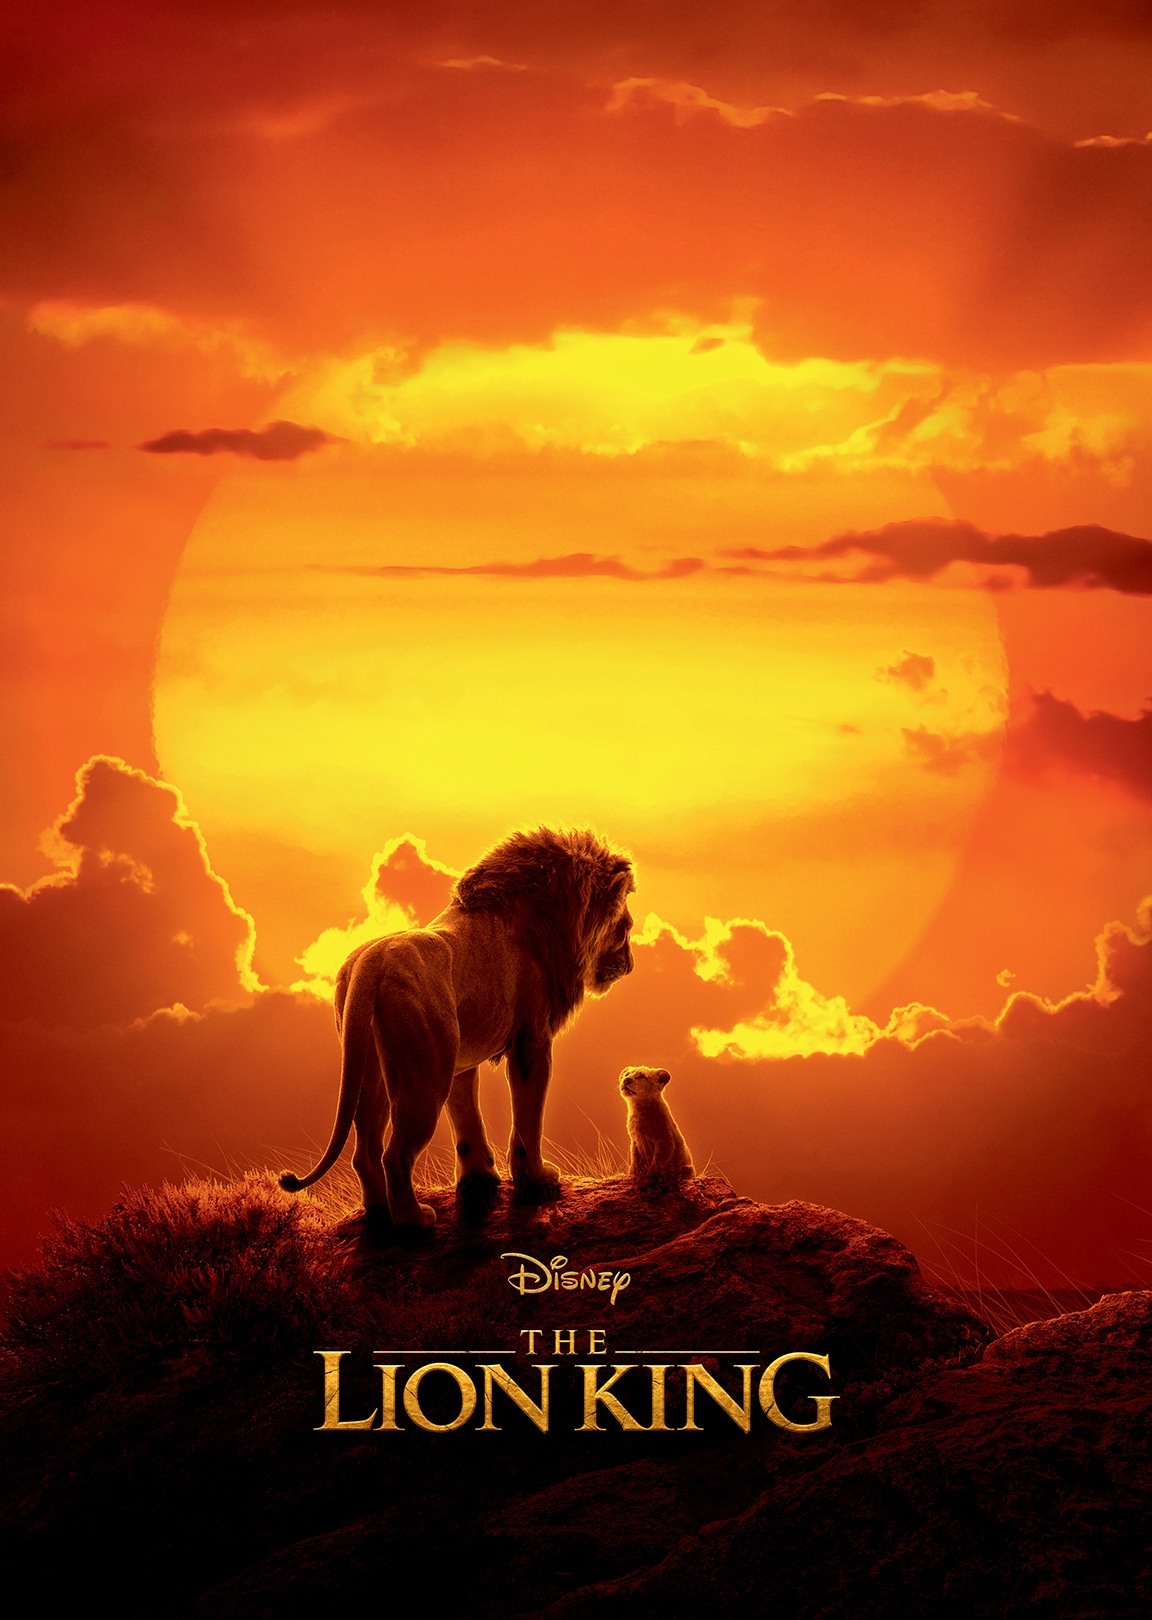 the lion king movie poster 2019 party music